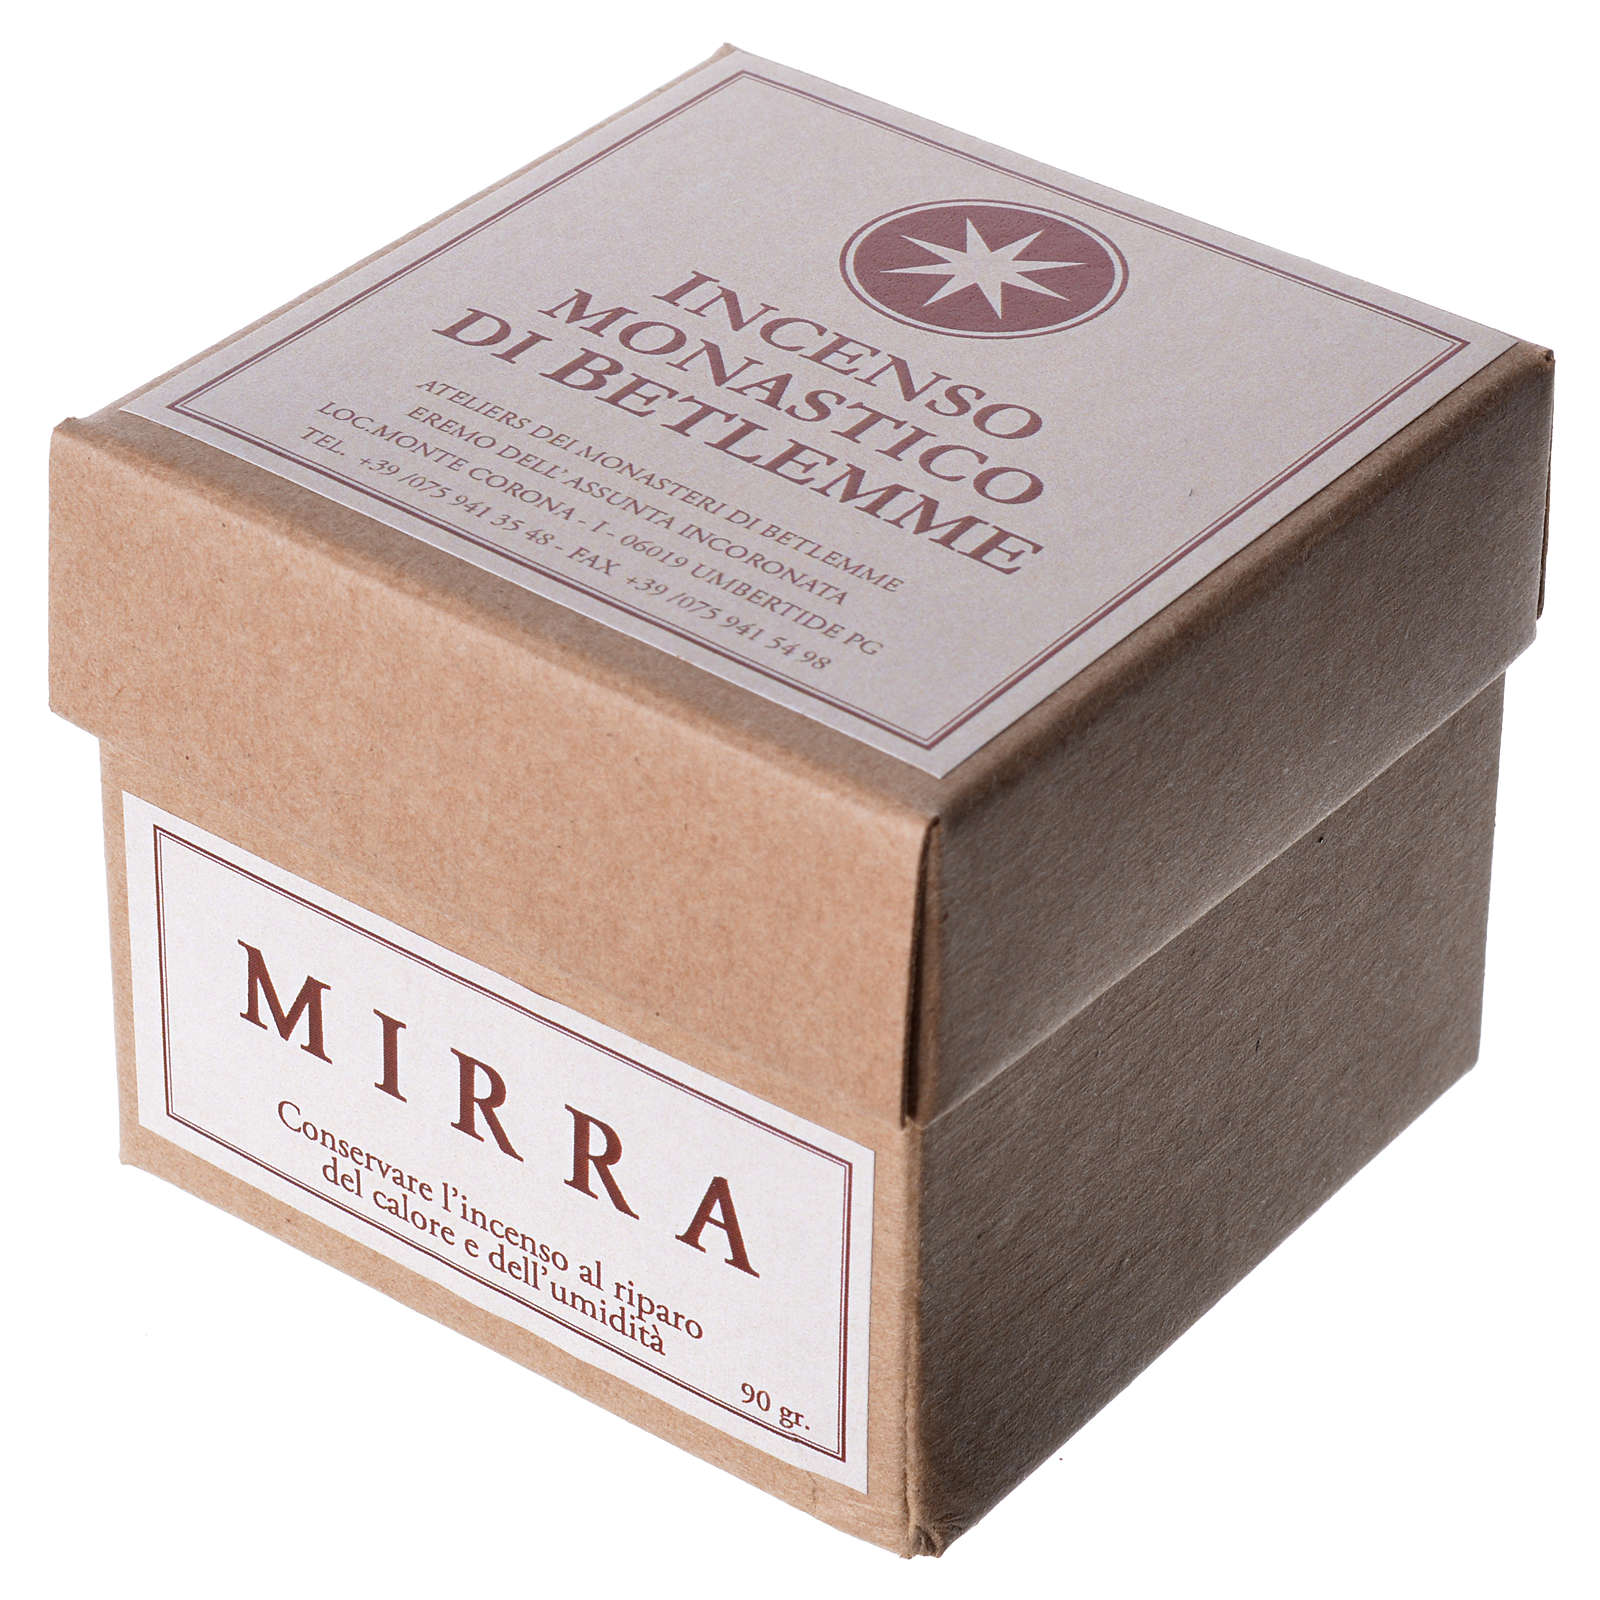 Myrrh Incense, Bethlehem Monks 90gr 3